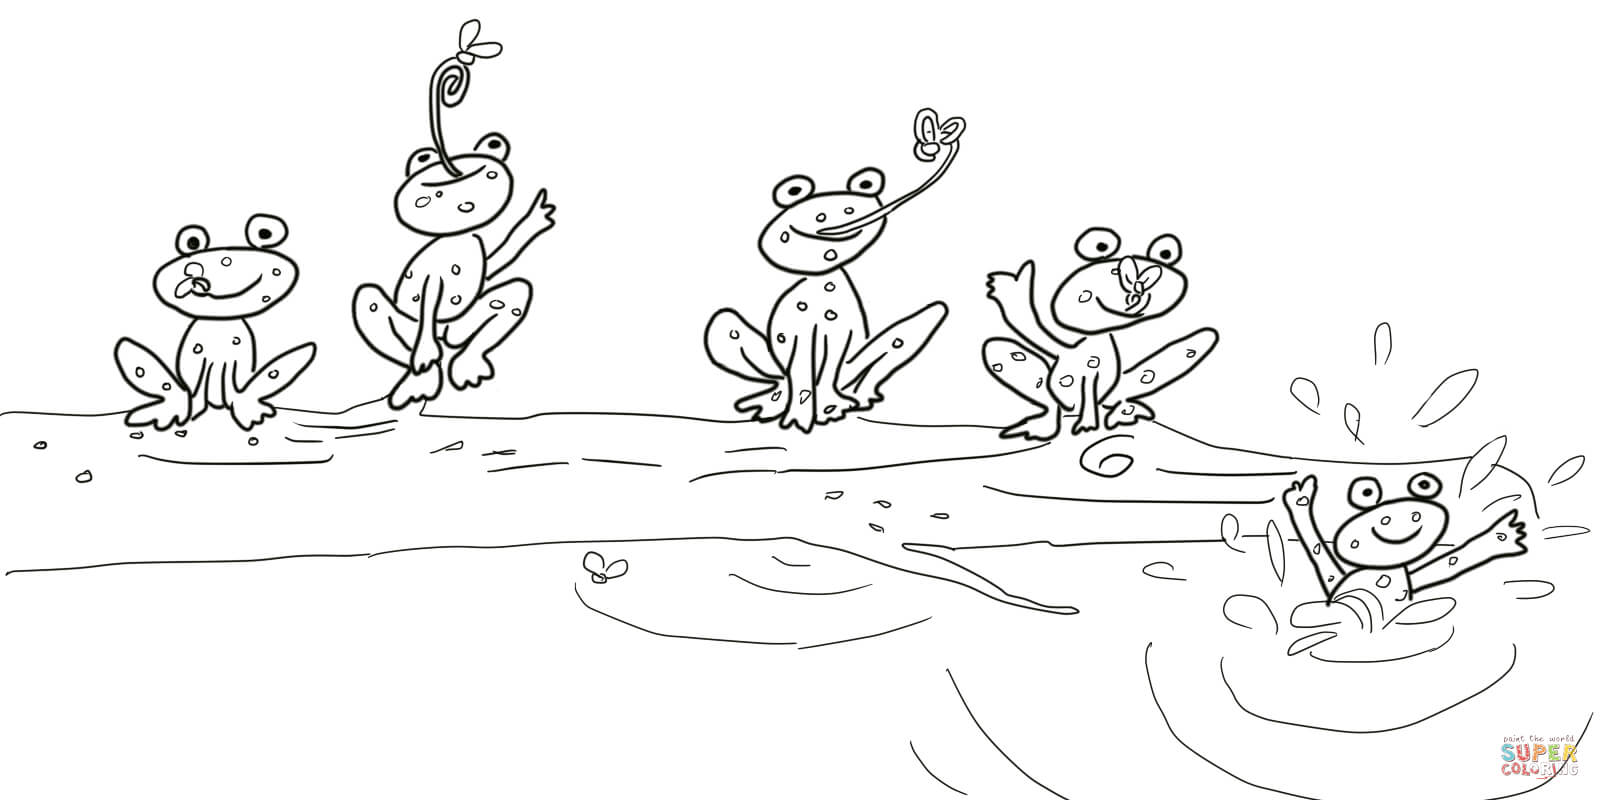 5 Little Speckled Frogs Coloring Page